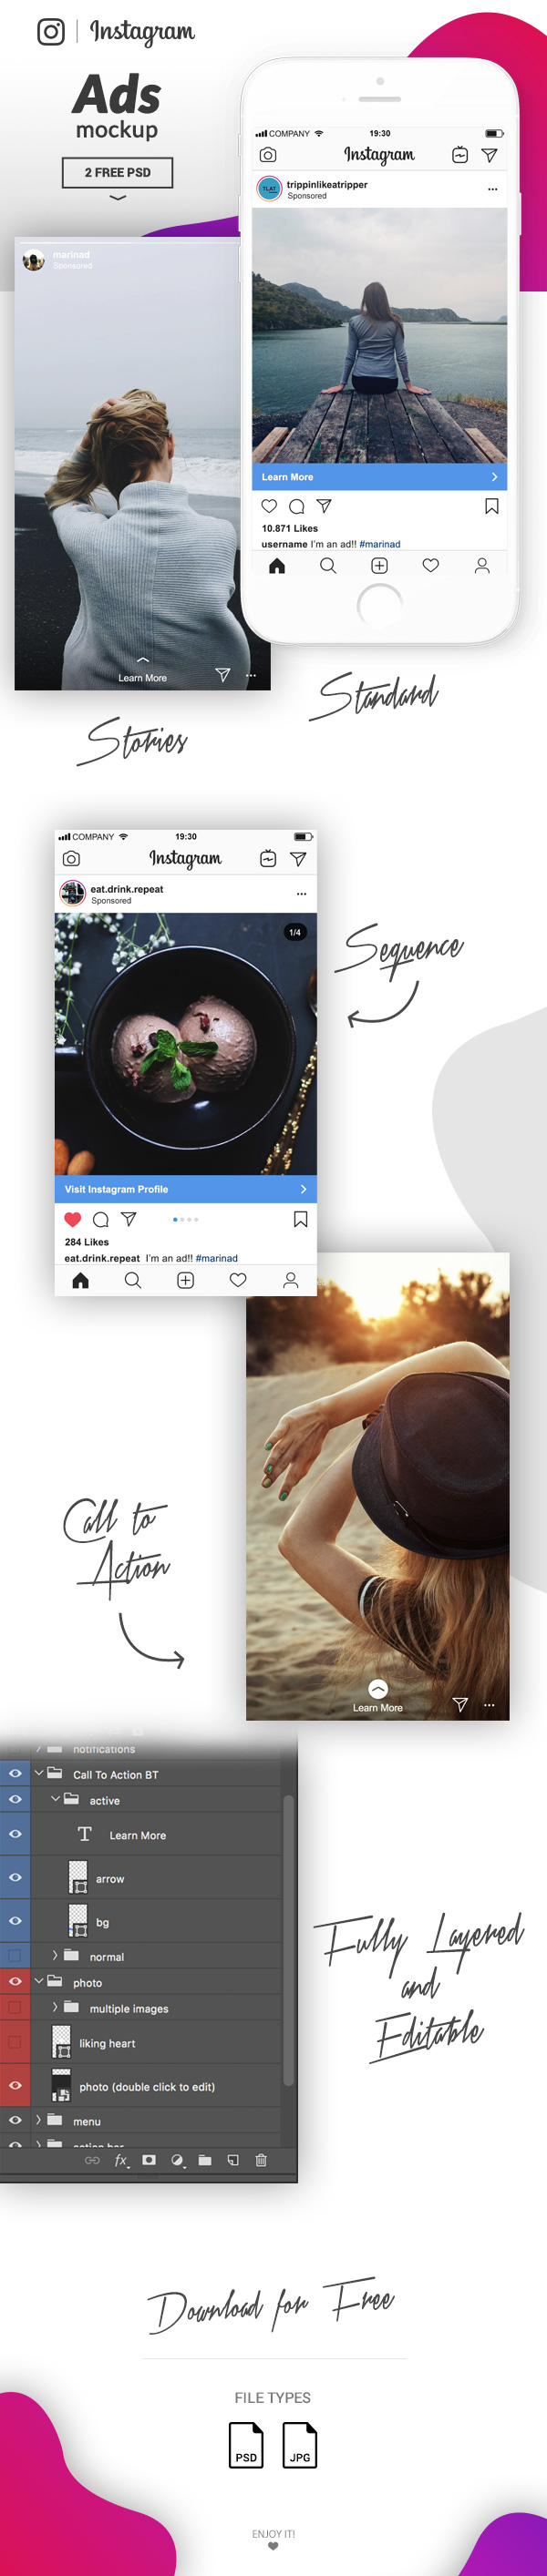 instagram ads mockup ui layout